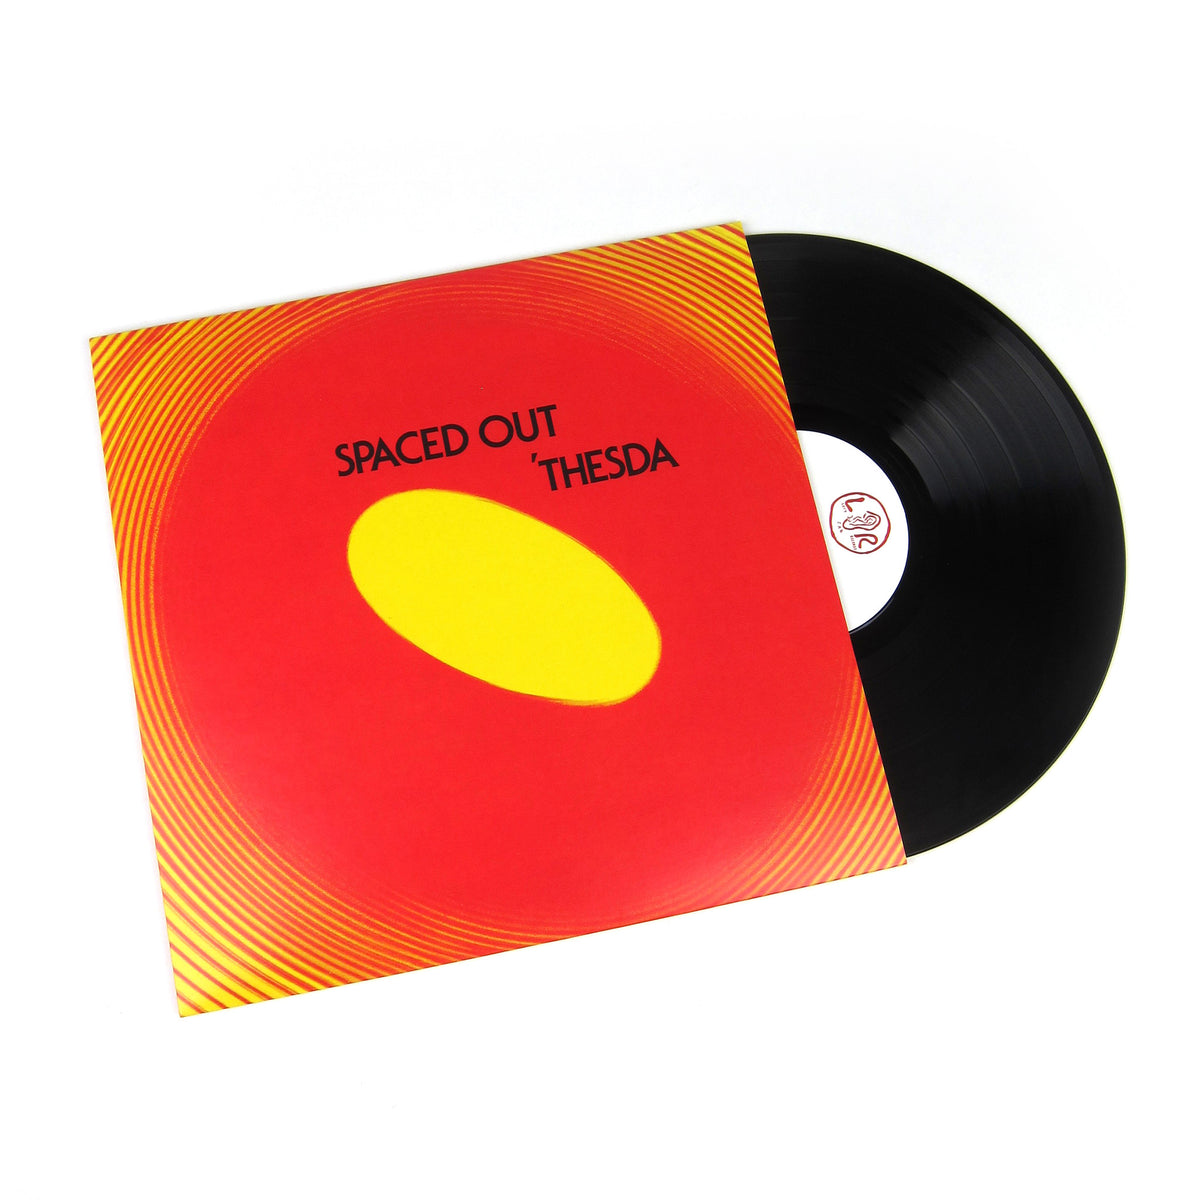 Thesda: Spaced Out Vinyl LP